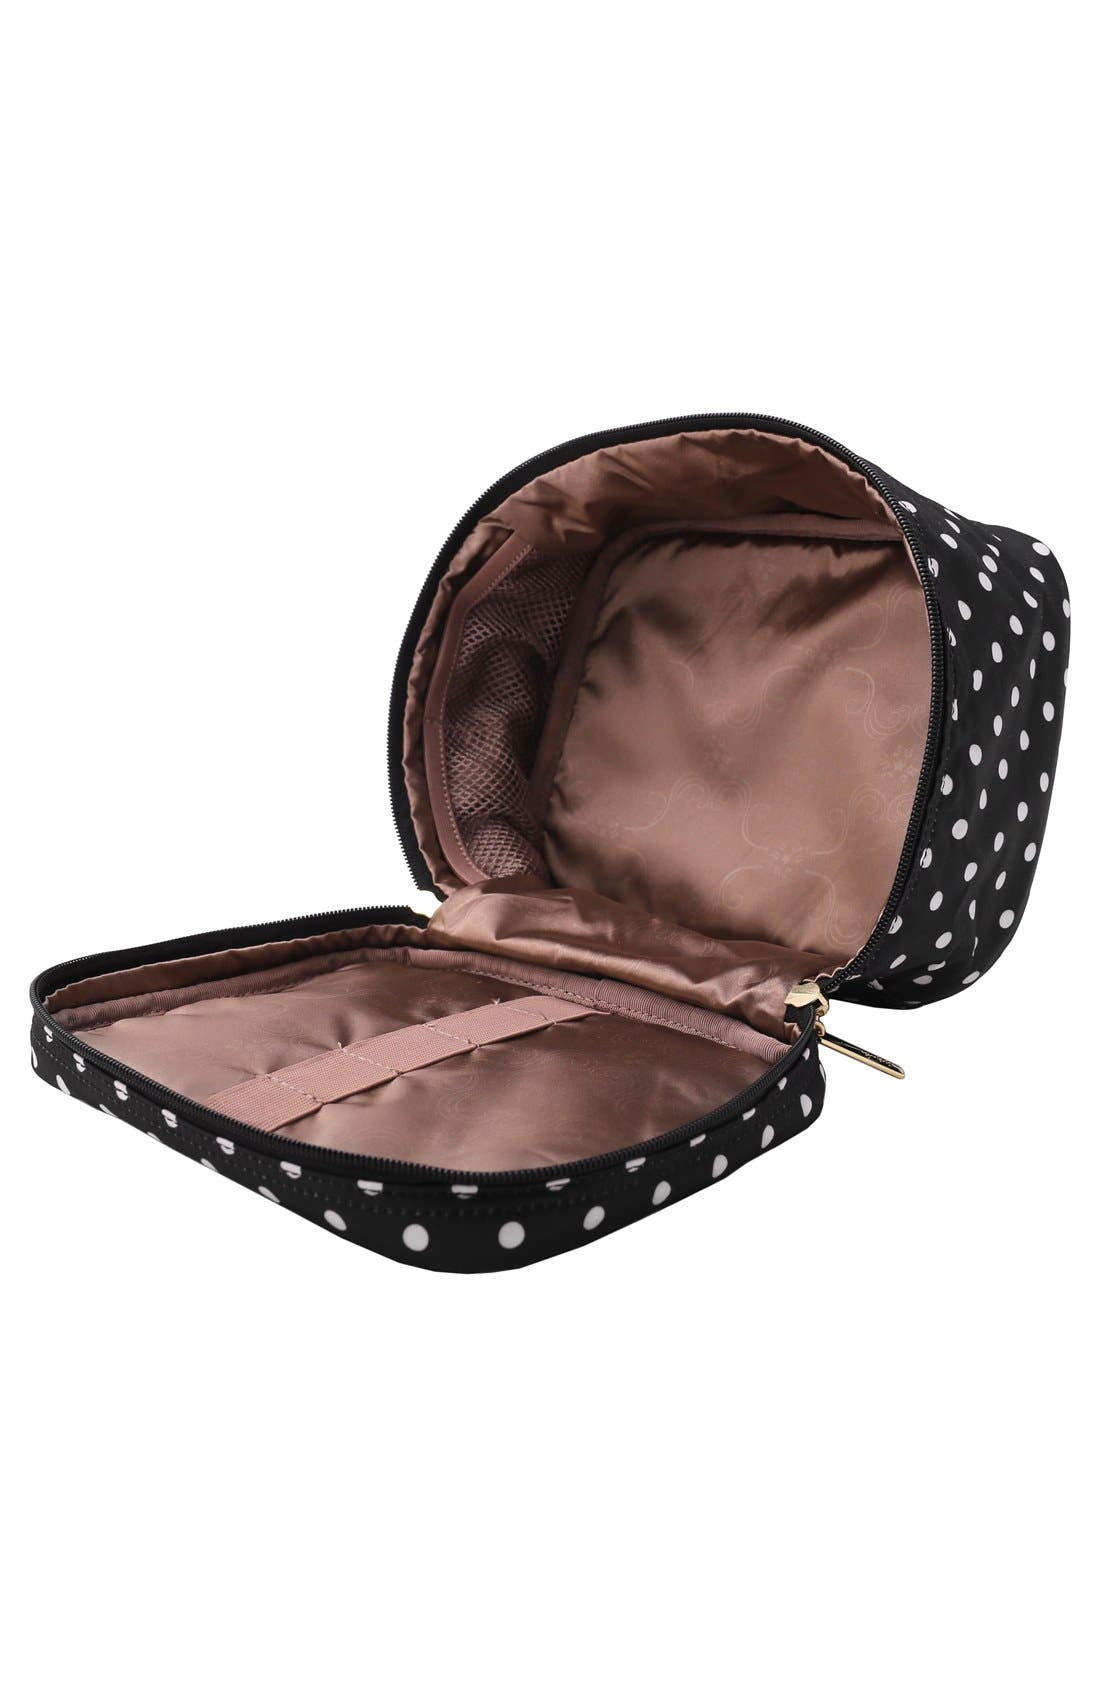 Legacy Be Ready Cosmetics Travel Case,                             Alternate thumbnail 2, color,                             The Duchess